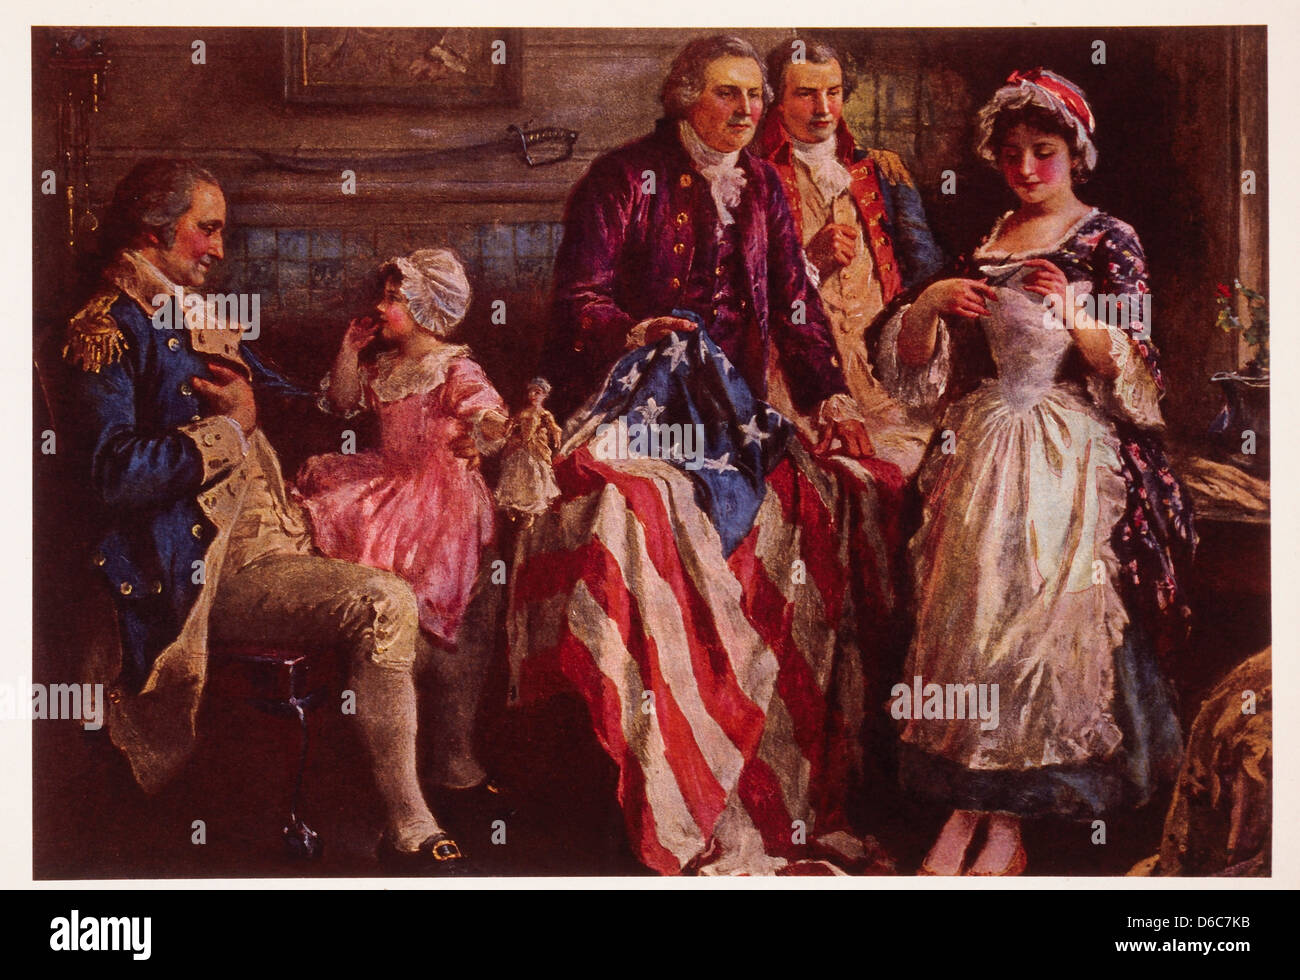 the role of betsy ross to the american flag The story of the betsy ross flag is one americans have told for more than 100 years it goes like this: betsy ross is working in her upholstery shop when a small group of men rushes in, a committee officially tasked by the continental congress with designing and creating the first american flag .